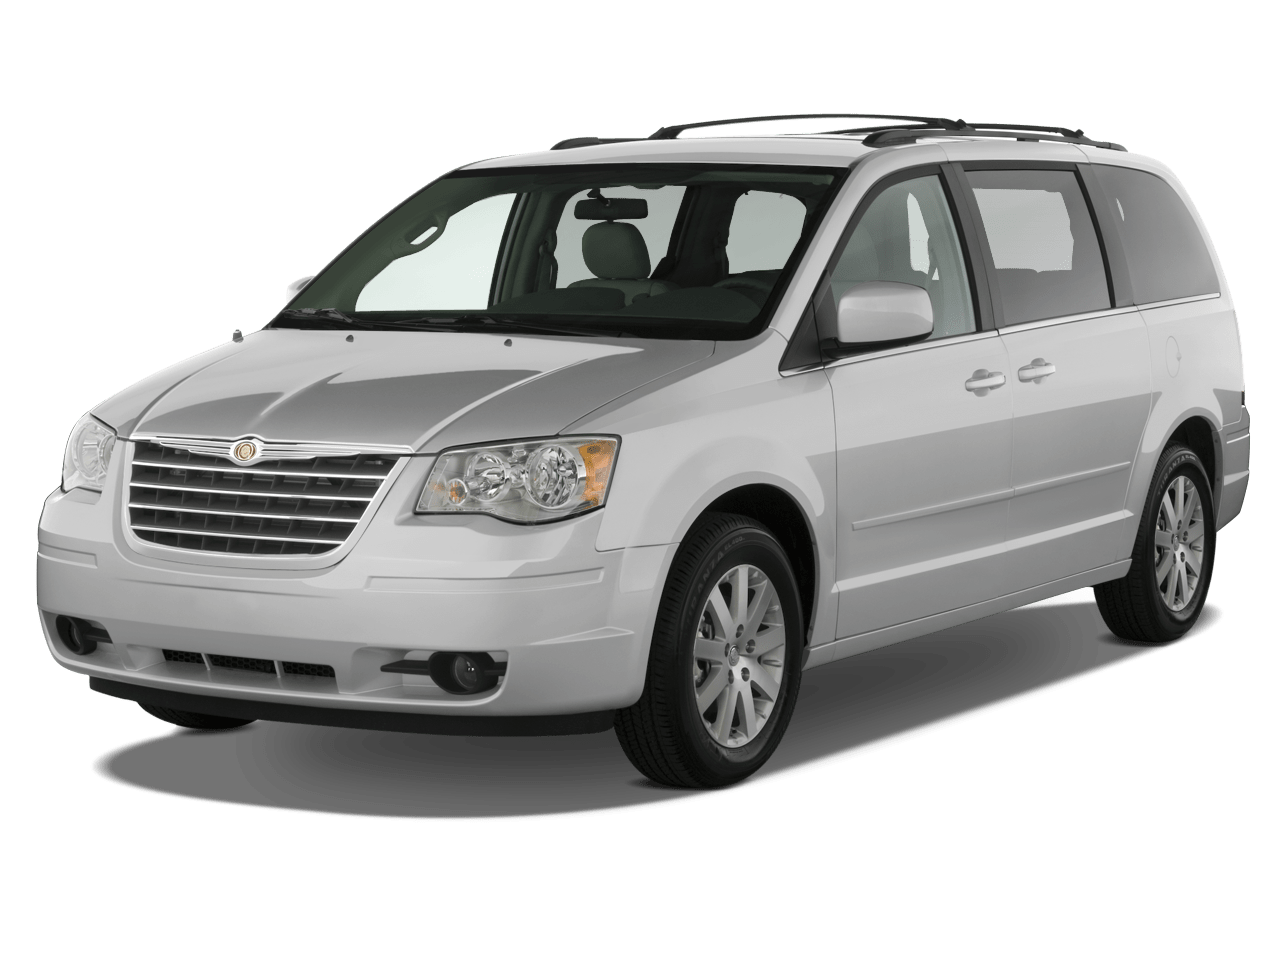 For A Chrysler 300 Front Fuse Box 2009 Chrysler Town Amp Country Reviews And Rating Motor Trend